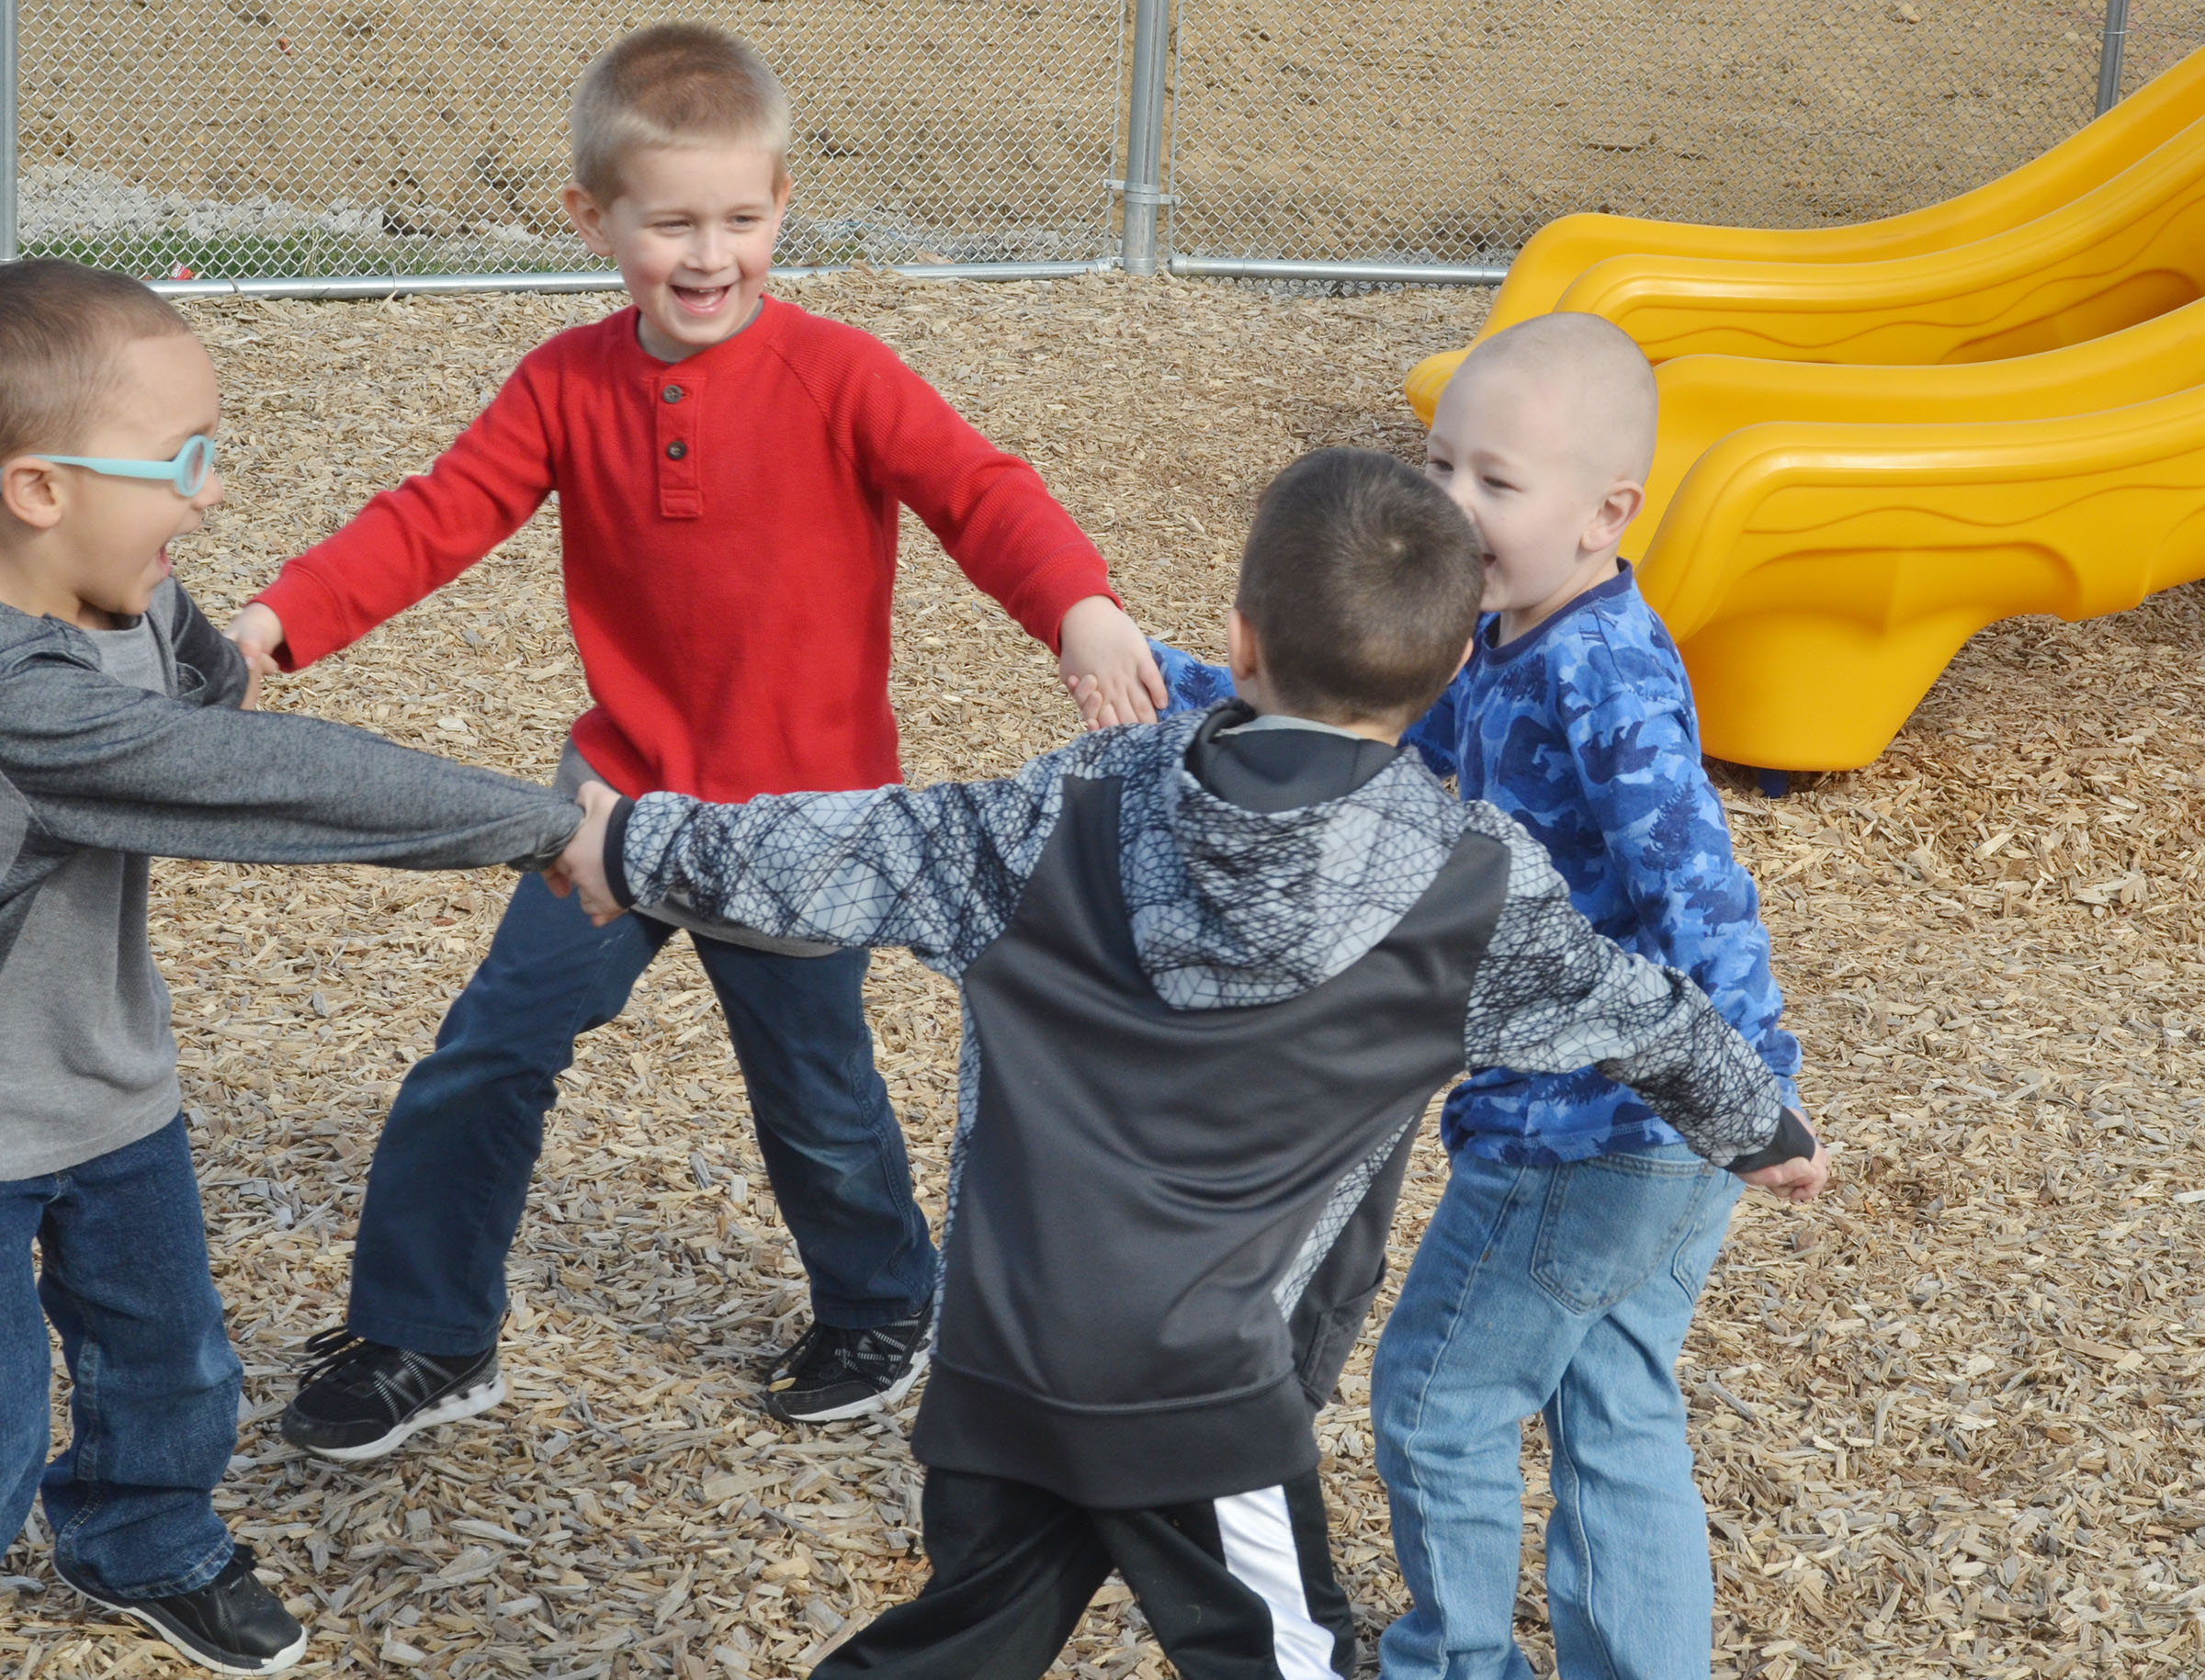 From left, CES preschool students Chanler Mann, Jacob Parrish, Levi Ritchie and Cameron Dean run together.